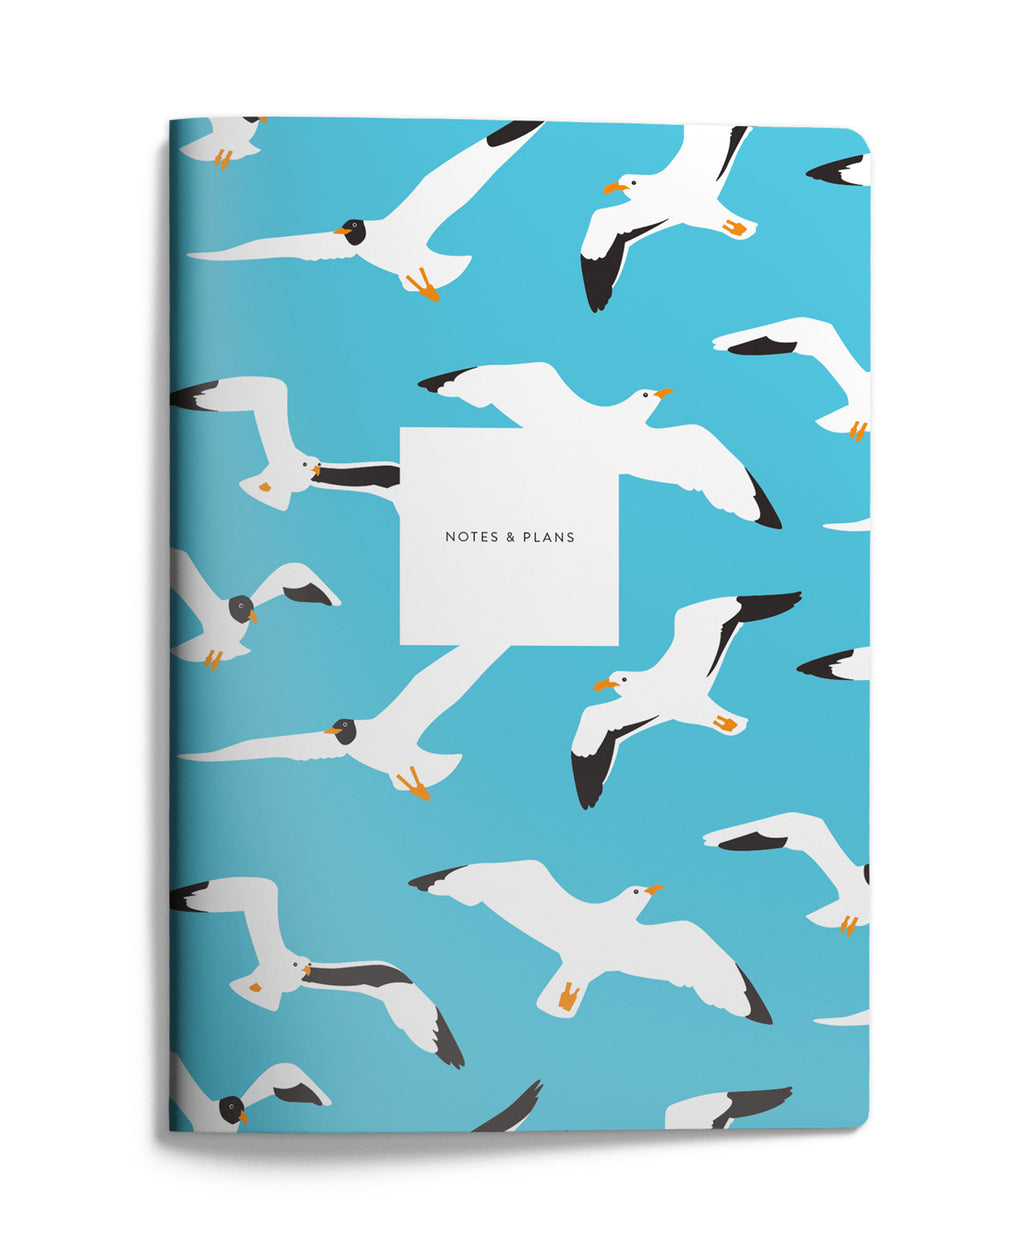 Lokit notebook, cover